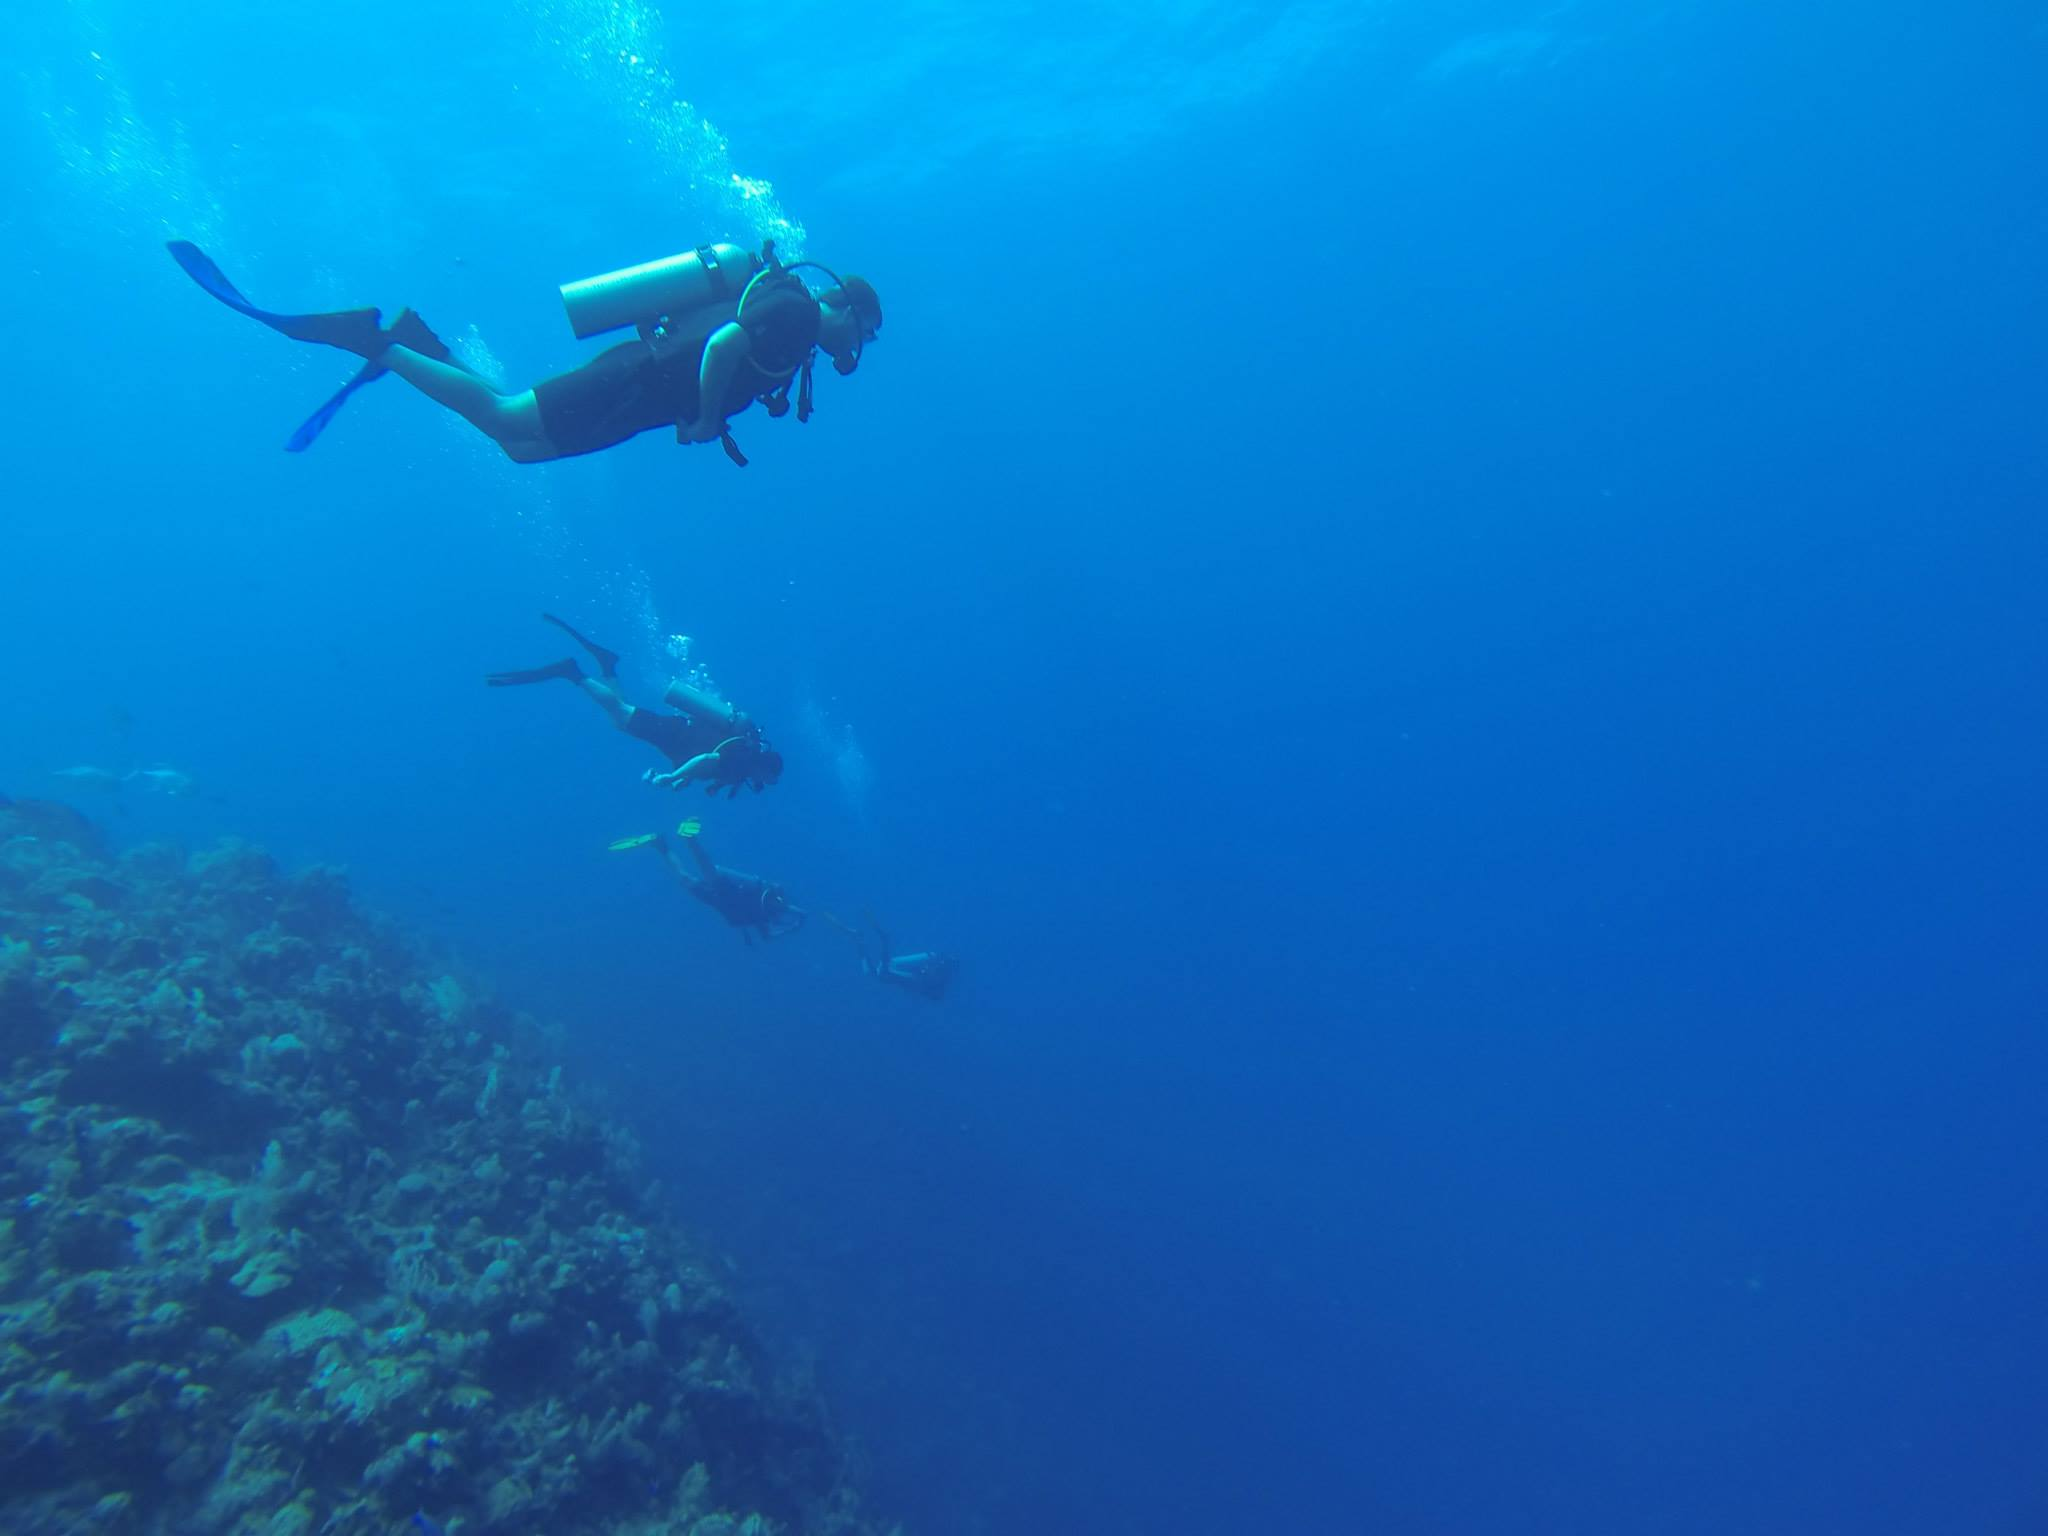 Me and my family, doing some dive travel for the first time together, off the plateau at West End Wall, Roatan, Honduras.